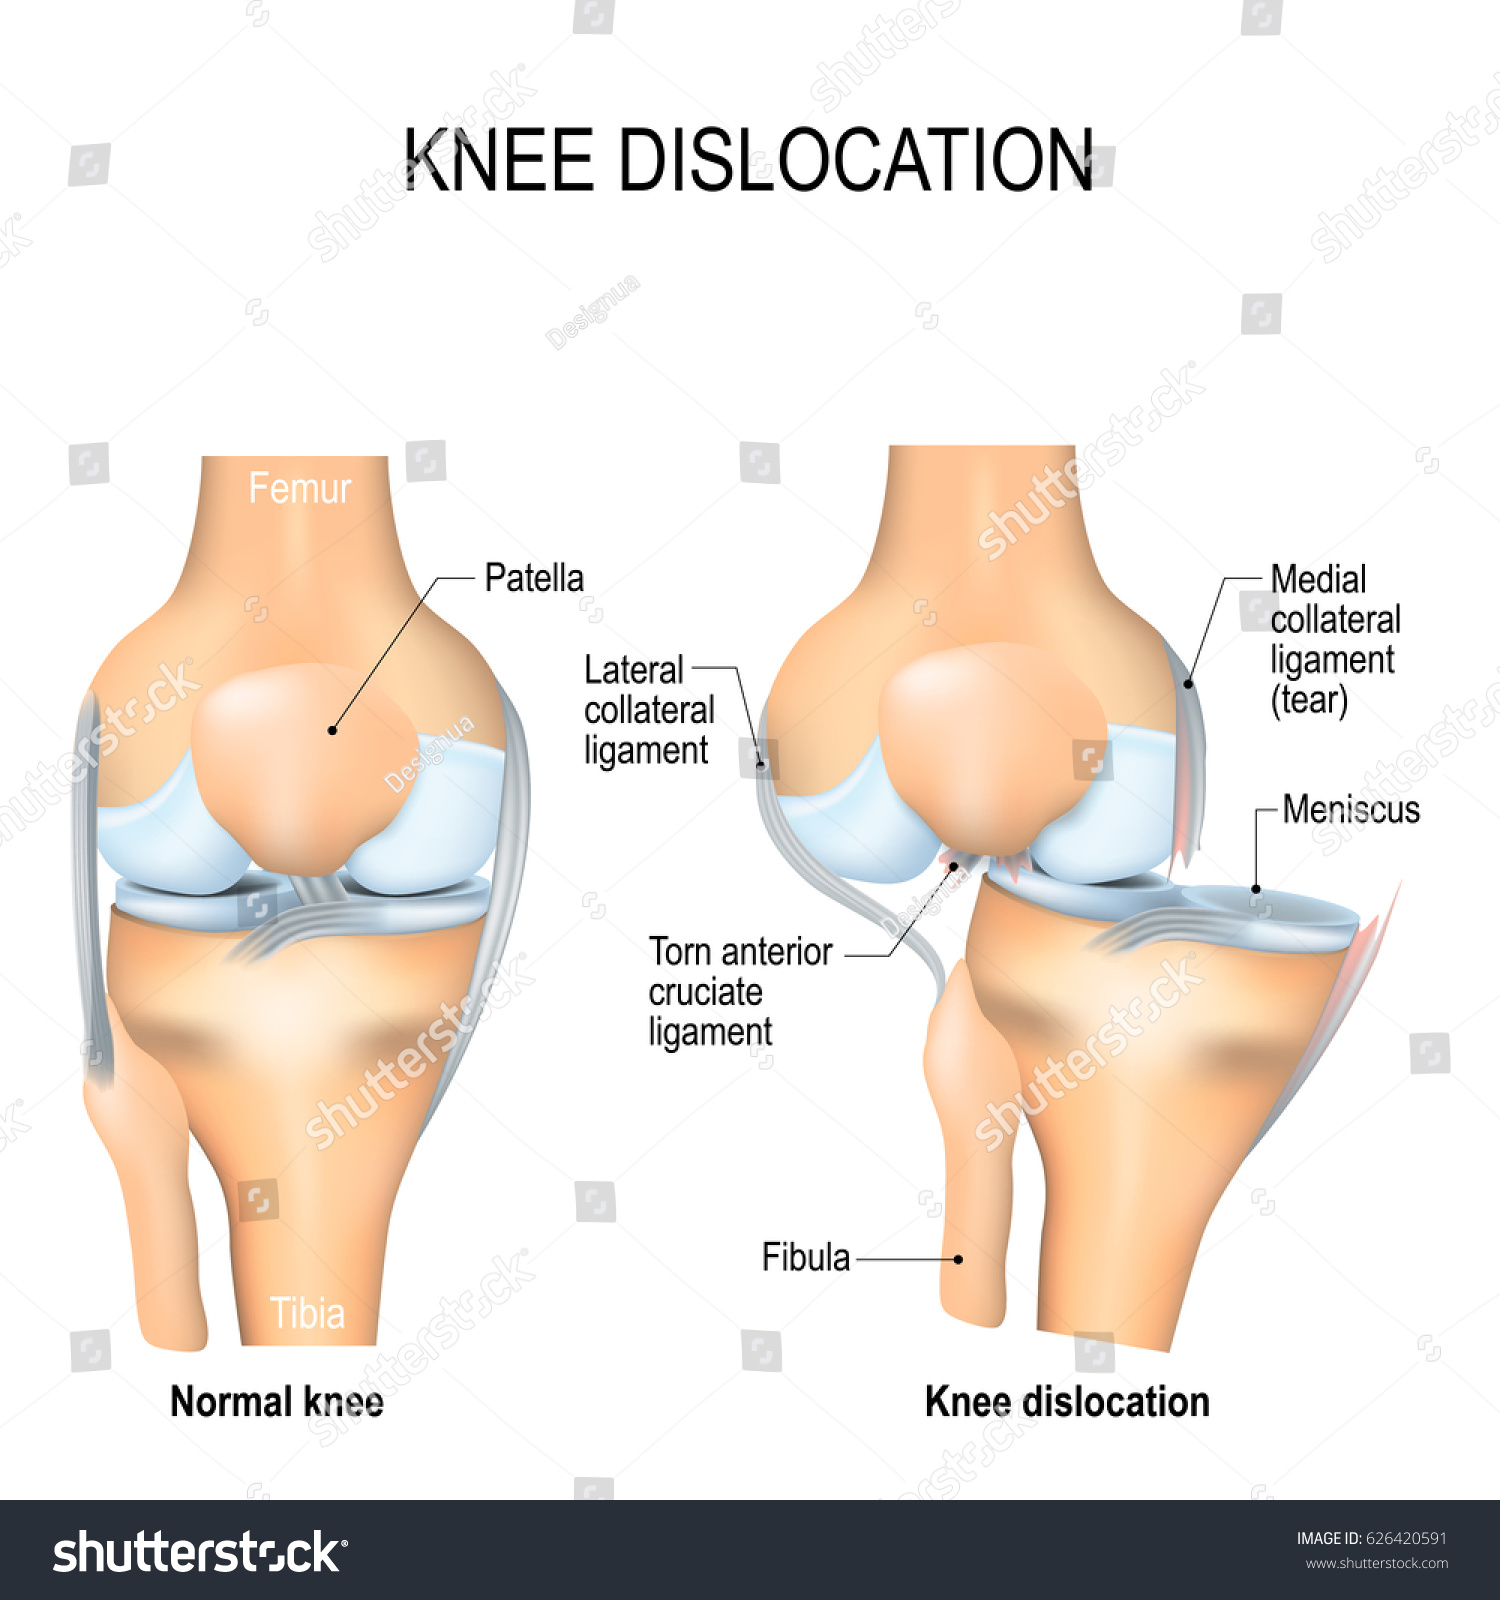 Knee Dislocation Normal Lateral Trauma Knee Stockillustration